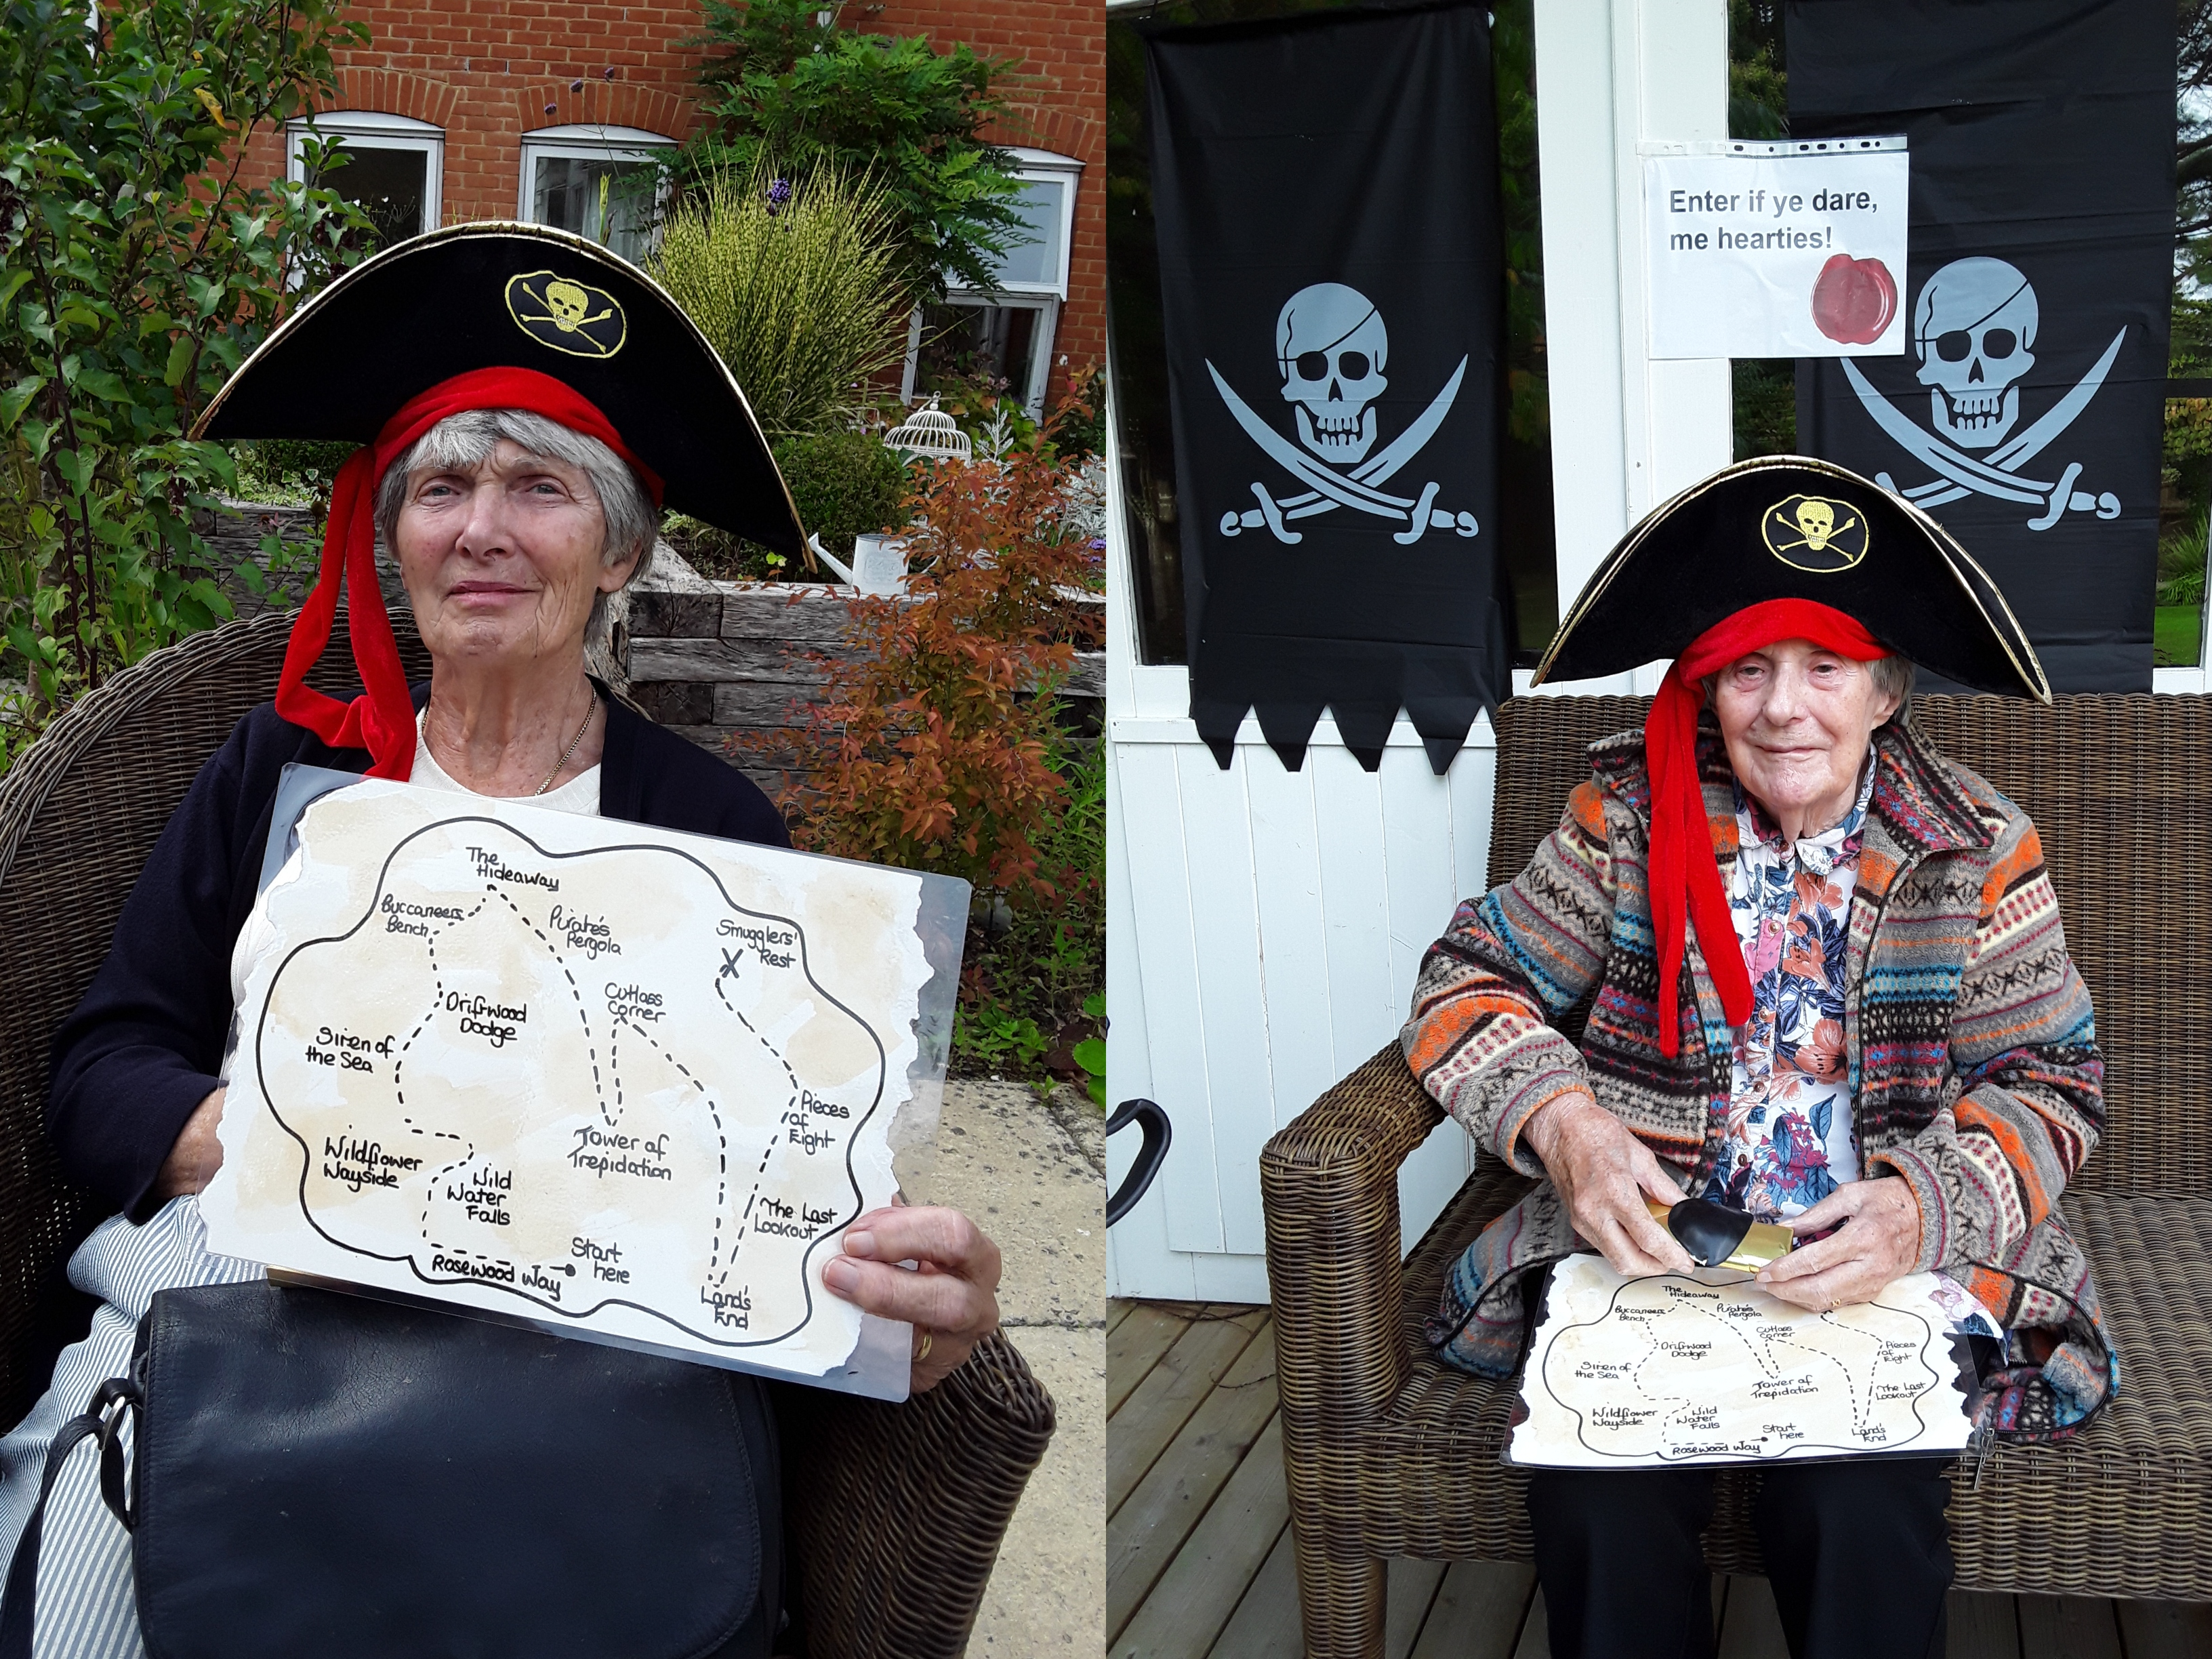 Ahoy there me hearties!